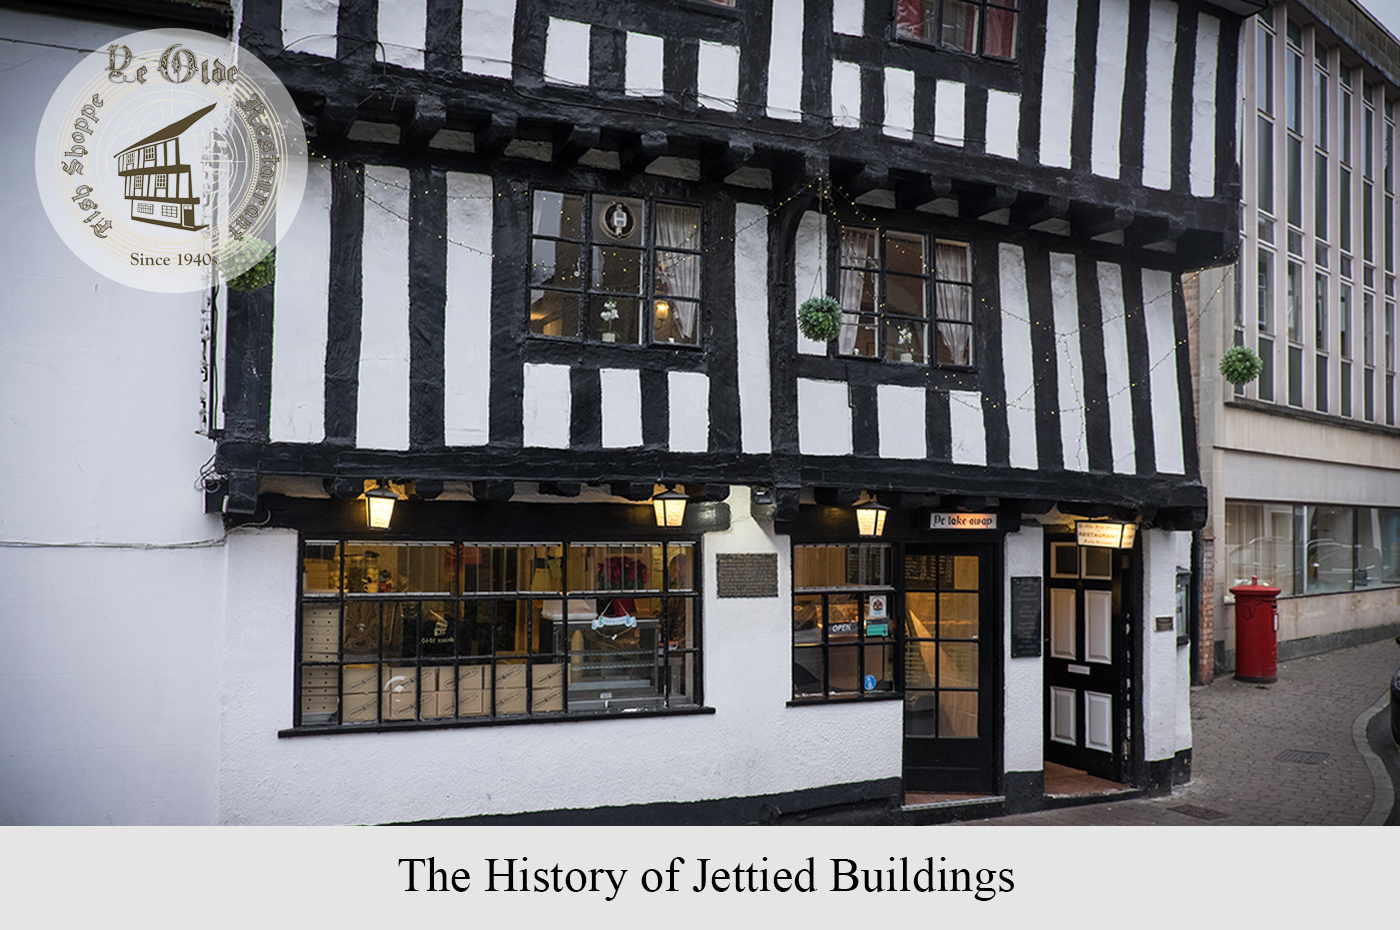 The History of Jettied Buildings